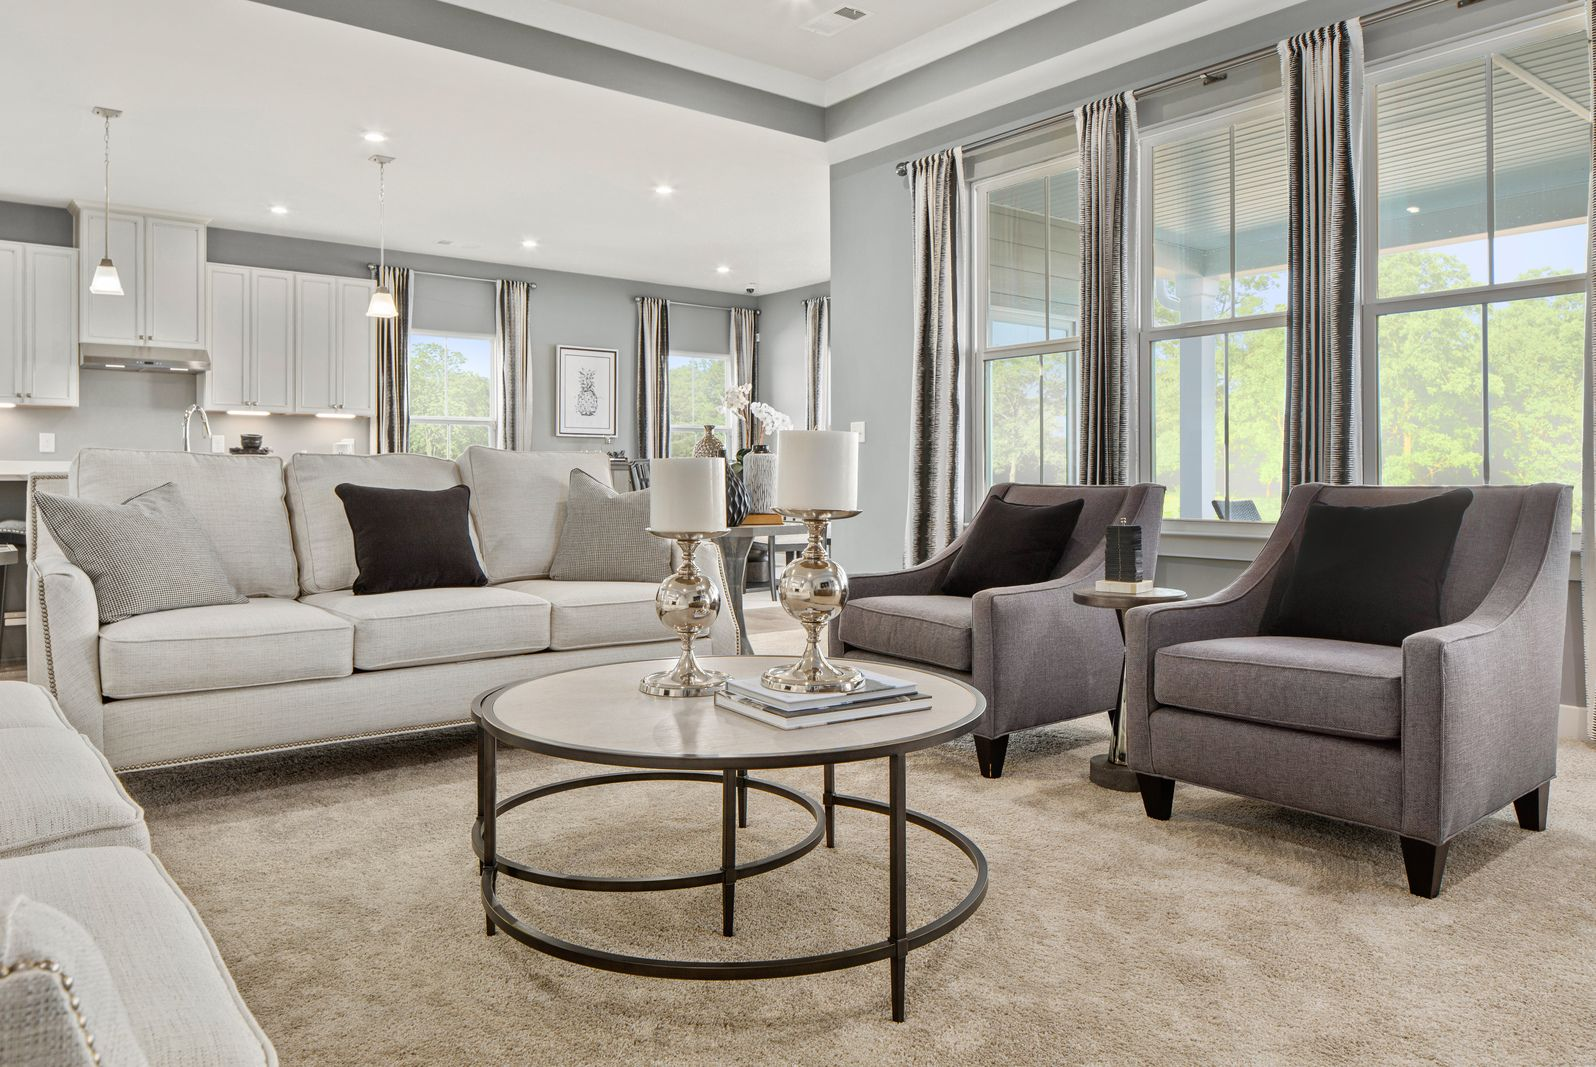 Living Area featured in the Savannah By Ryan Homes in Sussex, DE